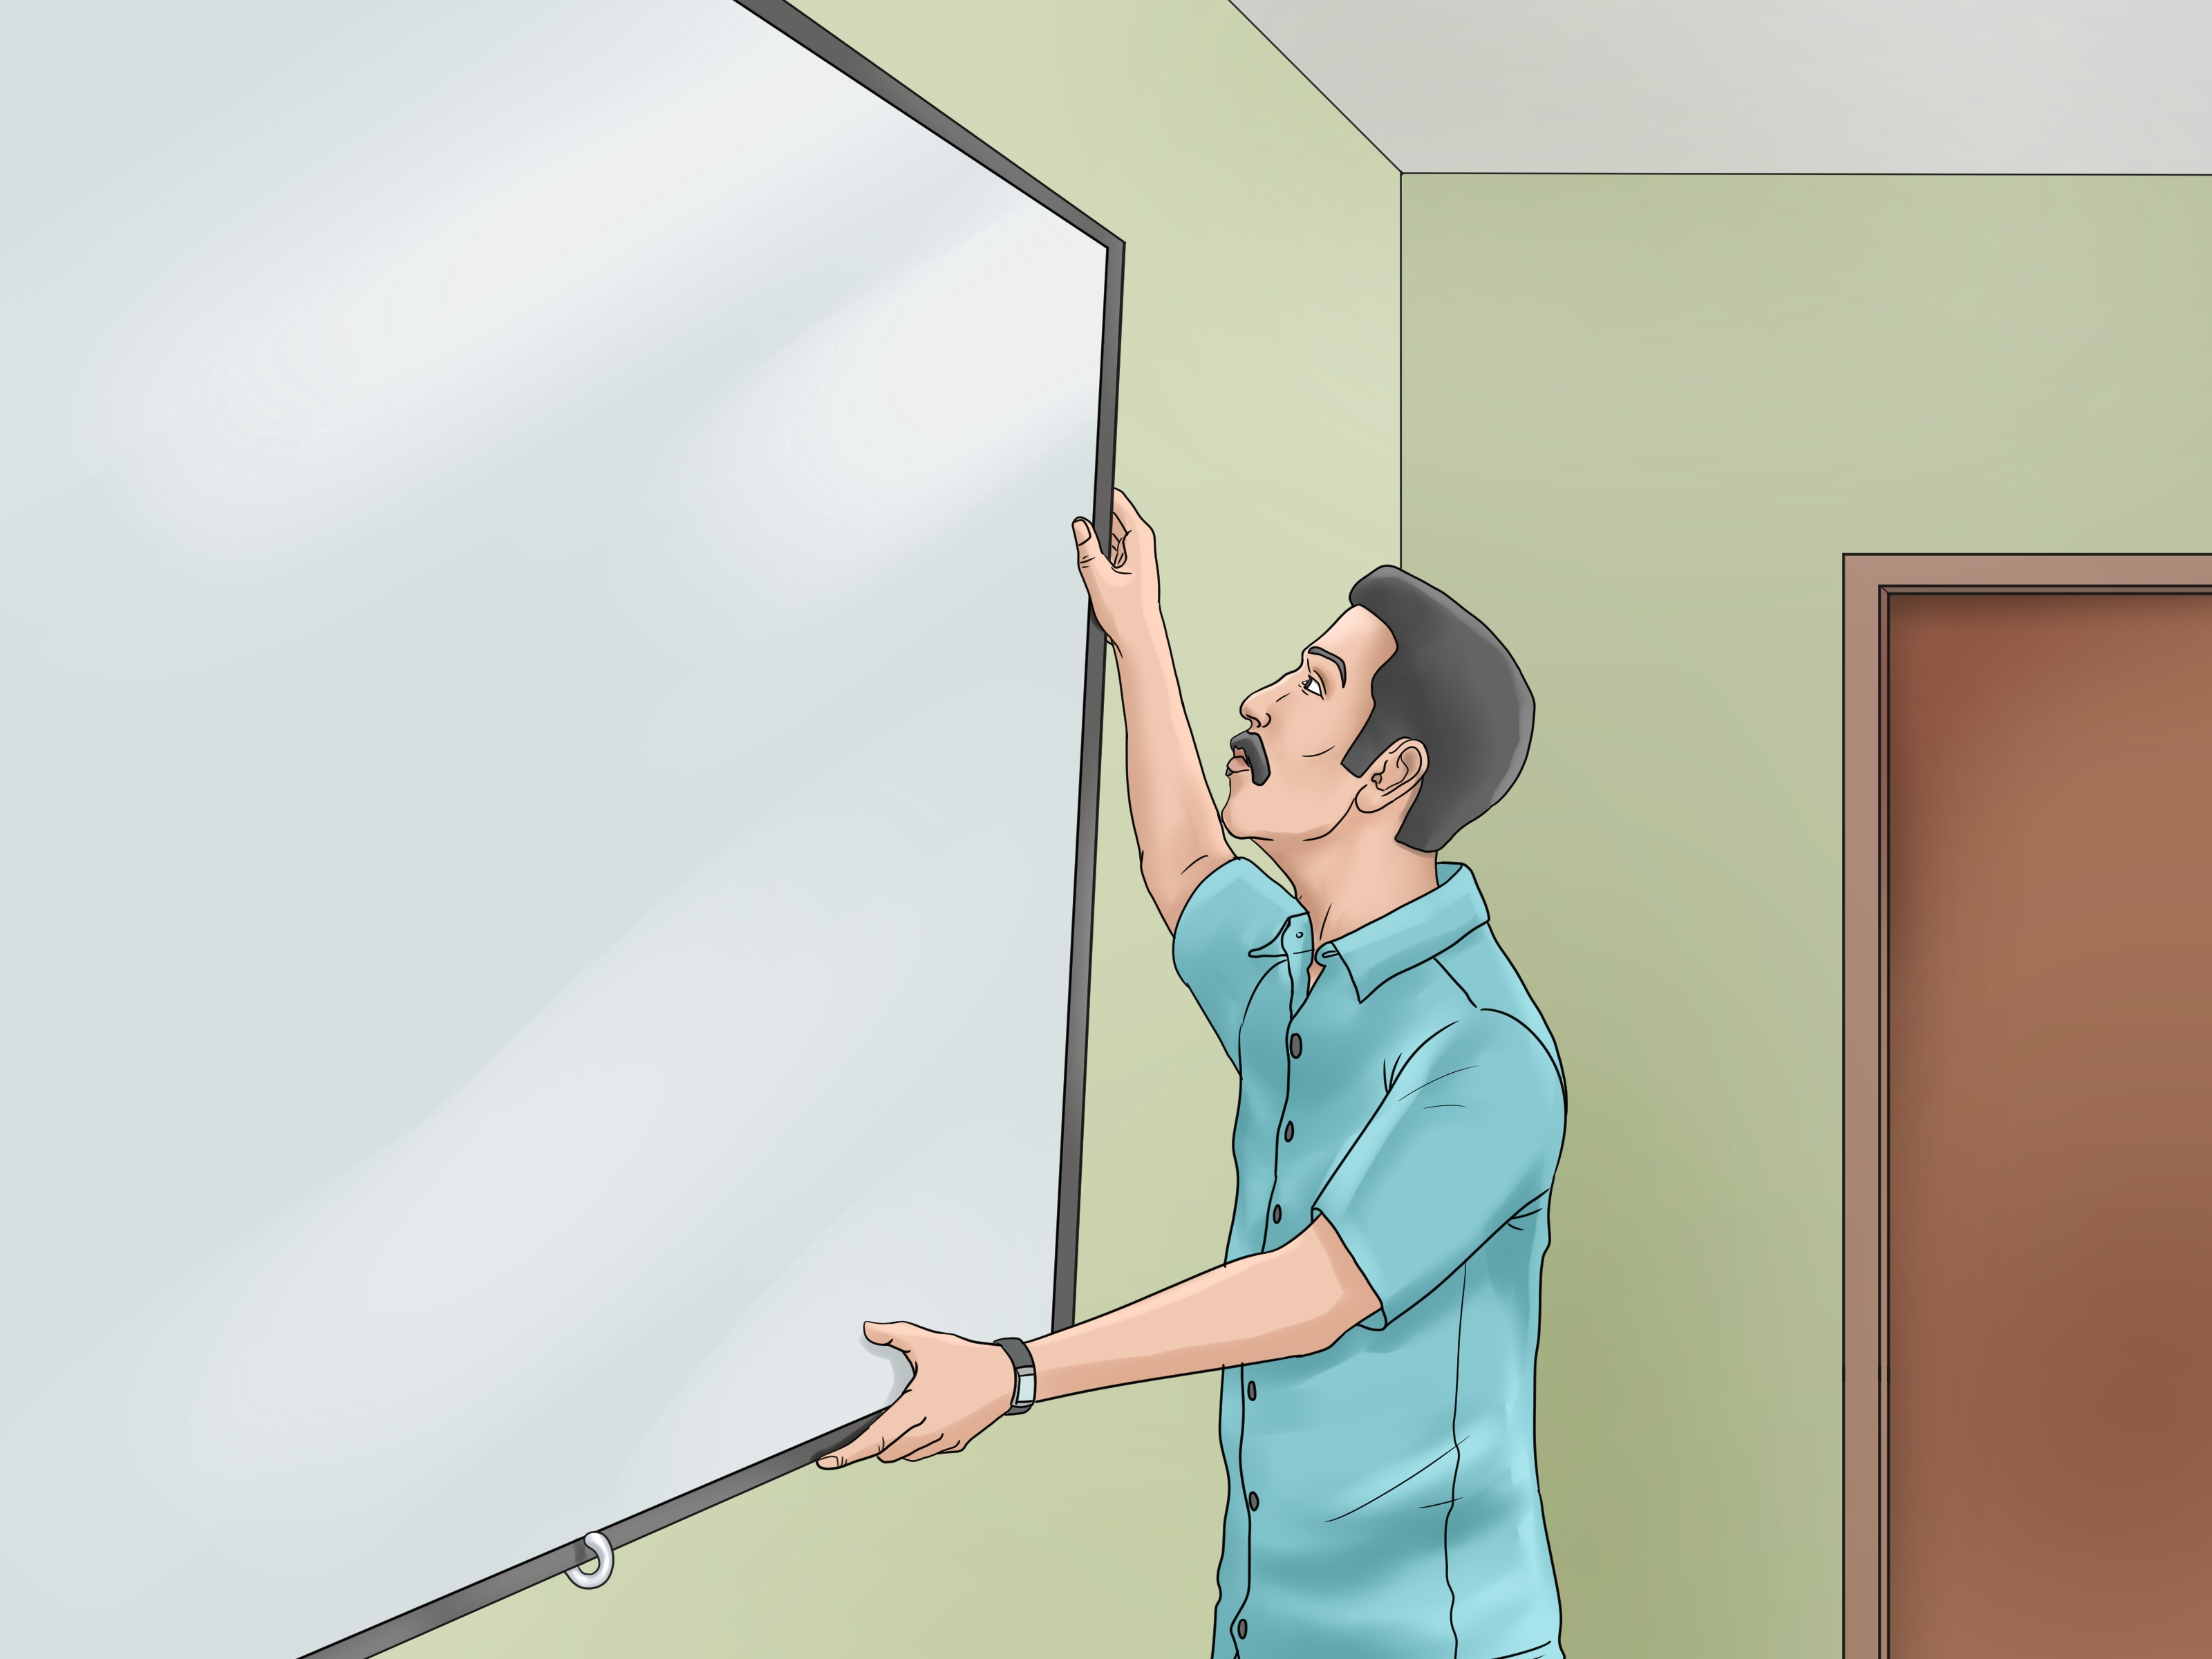 Turn A Wall Into A Whiteboard 3 Ways To Make A Whiteboard Wikihow